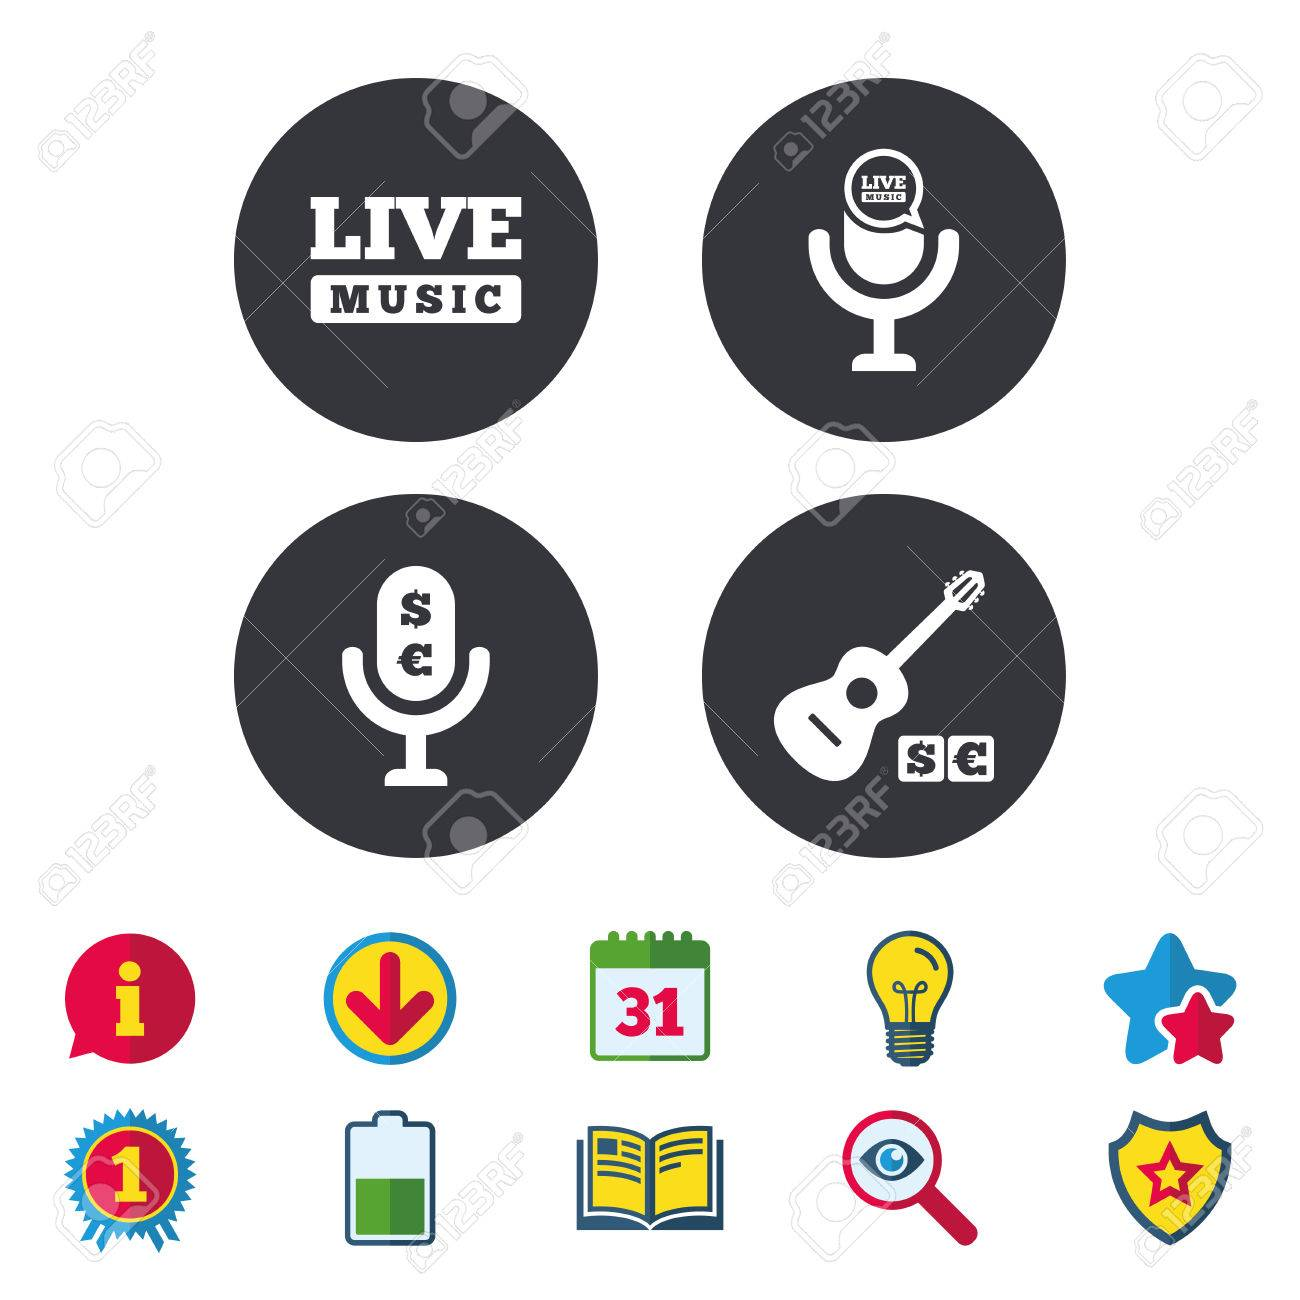 Musical elements icons  Microphone and Live music symbols  Paid